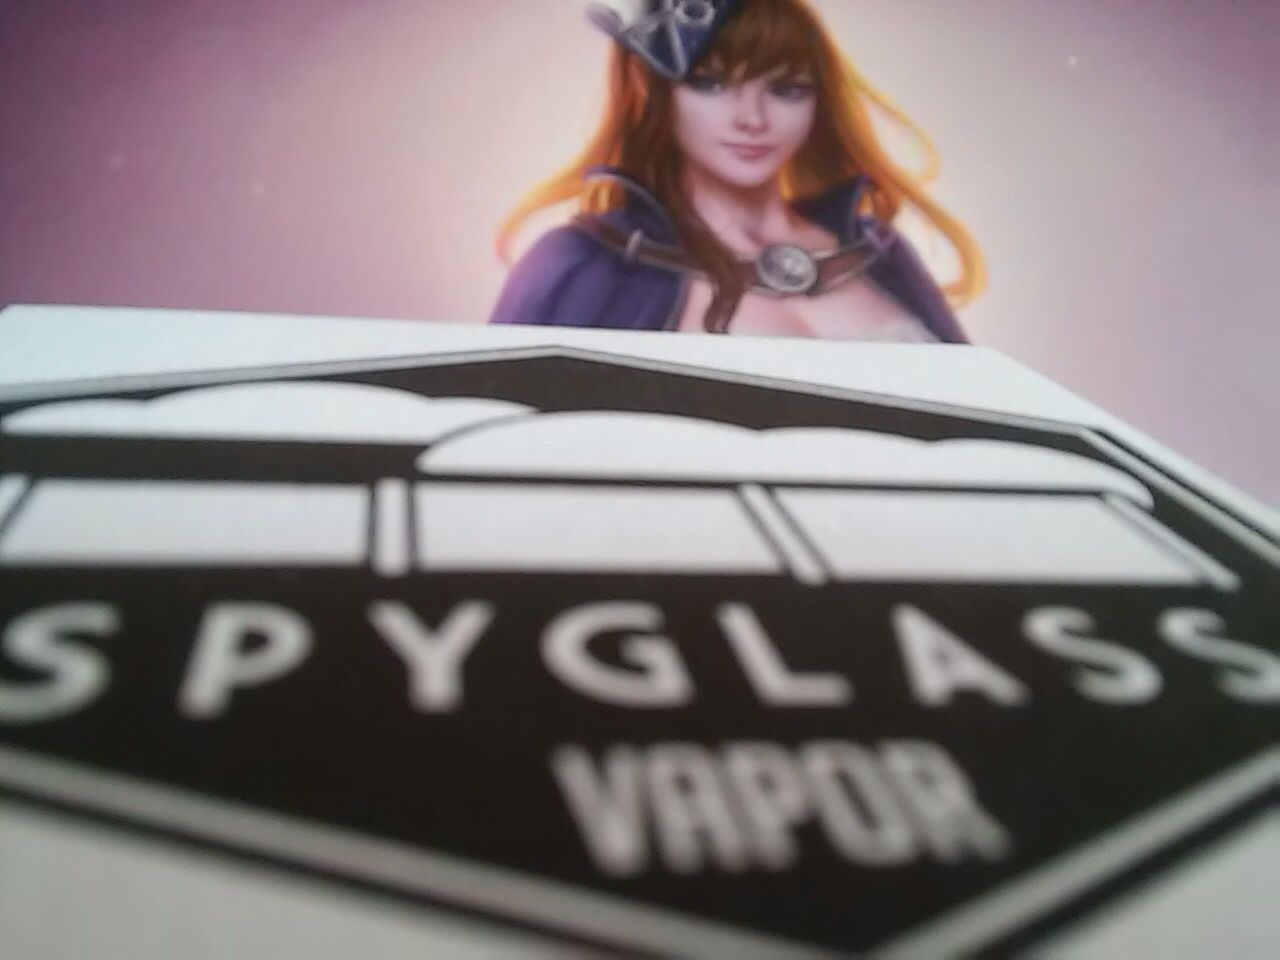 NOTE: If you can't make it to our B&M just north of Downtown Houston, come over to http://spyglassvapor.com/ and place your order there!  We are Spyglass! #spyglass #spyglassvapor #spyglasselixir #cloudcouch #DrAculaEliquid #DrAcula #eliquid #houstontexas #houstontx #houston #vape #vaping #vaper #vapers #vapeforlife #vapinglife #vapefamily #vapefam #notblowingsmoke #notbigtobacco